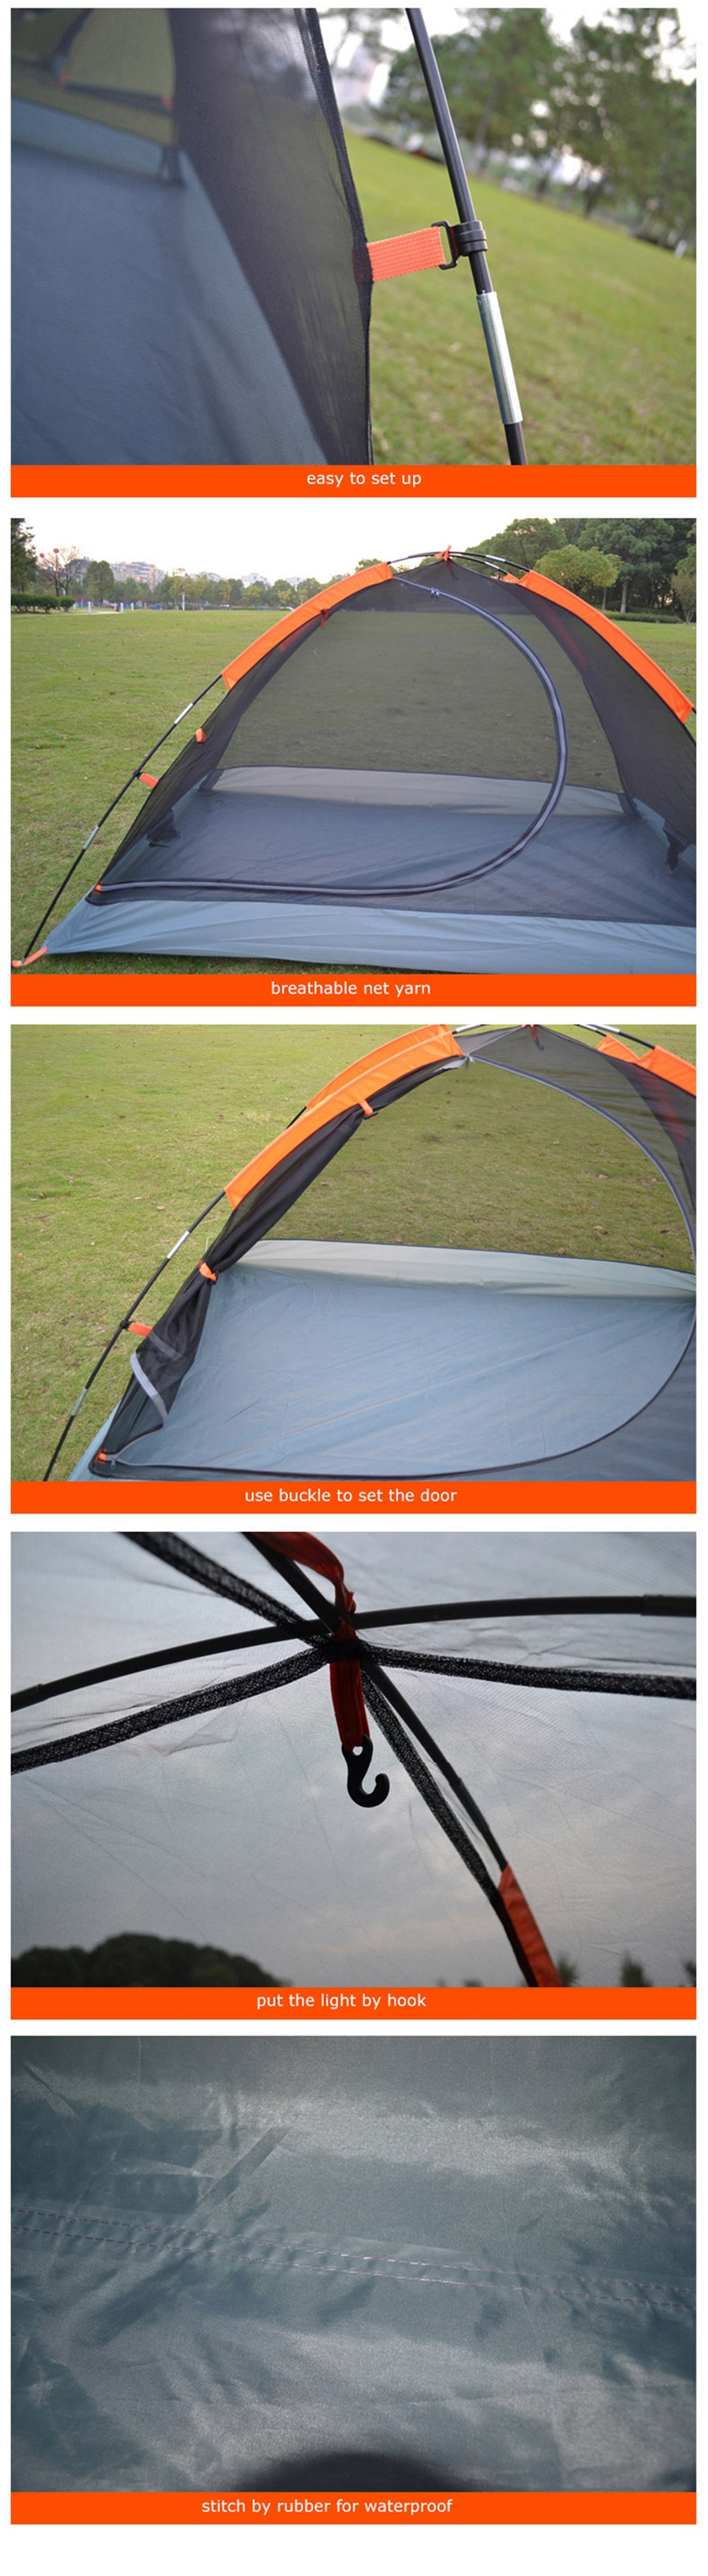 Desert&Fox Backpacking Tent, 2 Person Aluminum Pole Lightweight Camping Tent,Double Layer Portable Handbag for Hiking,Travelling